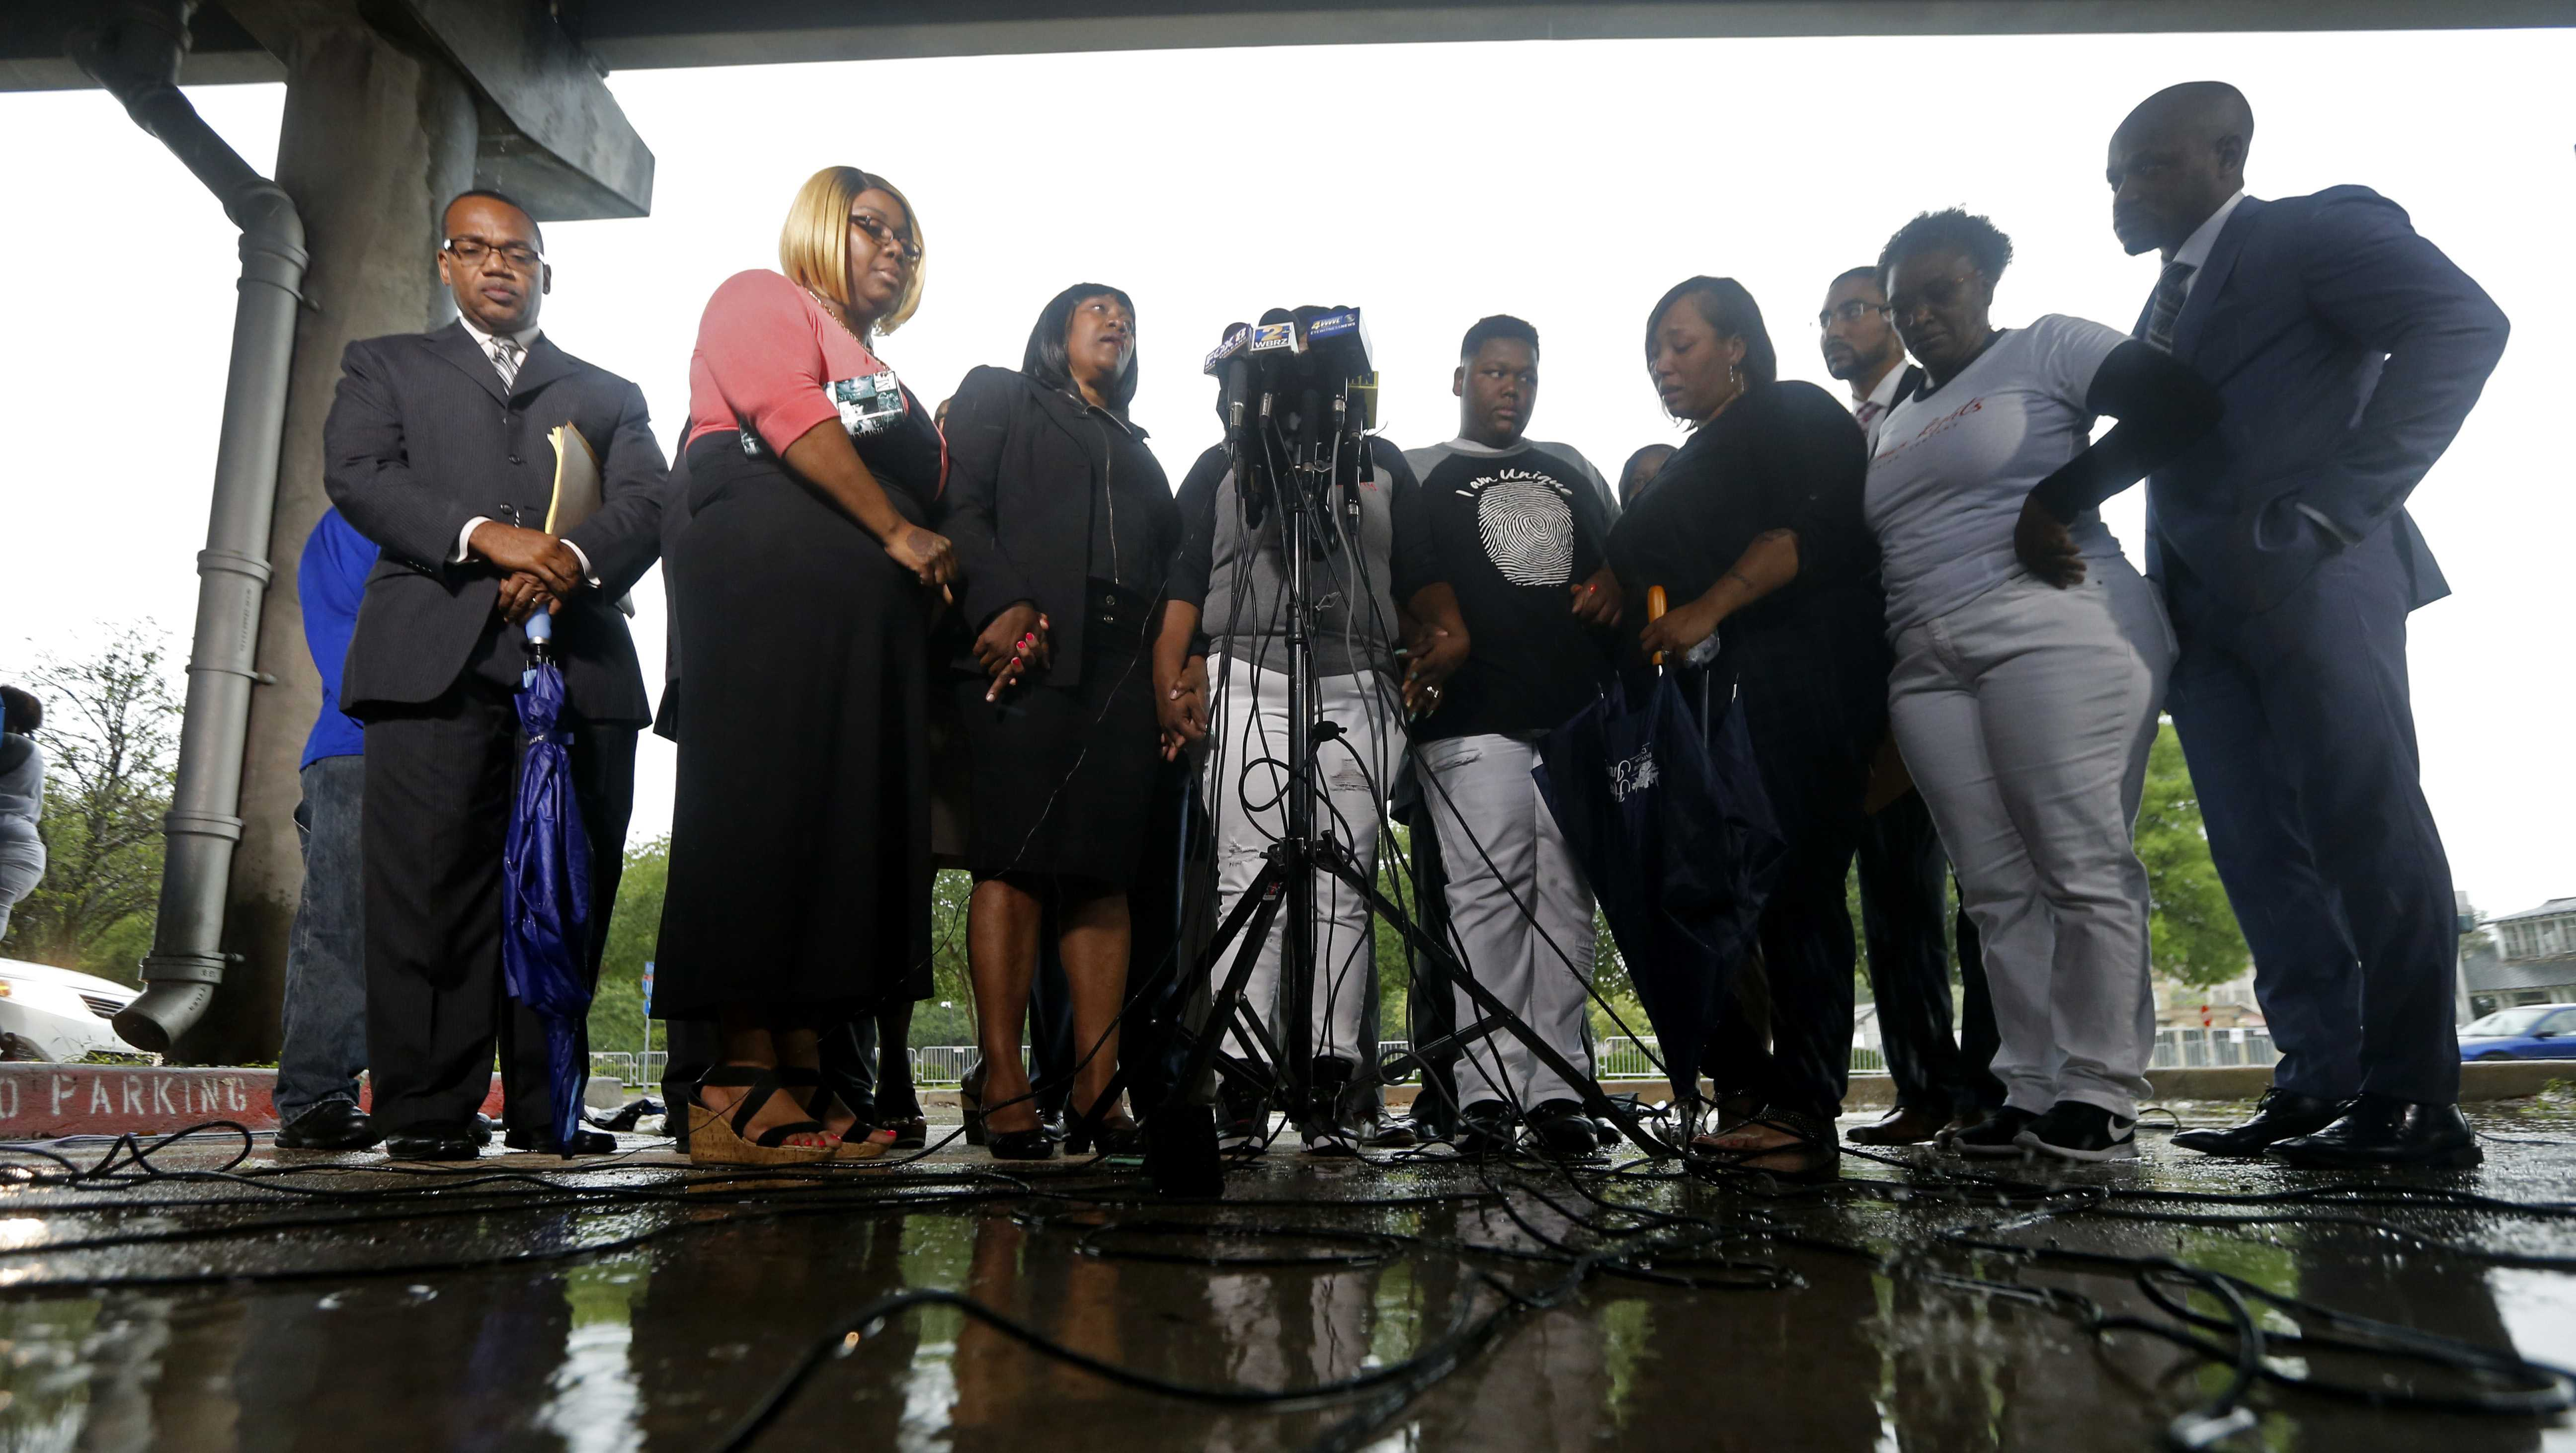 Family members of Alton Sterling and their attorneys speak after meeting with the U.S. Justice Department outside federal court in Baton Rouge, La., Wednesday, May 3, 2017. The Justice Department has decided not to charge two white Baton Rouge police officers in the shooting death of Sterling. (AP Photo/Gerald Herbert)